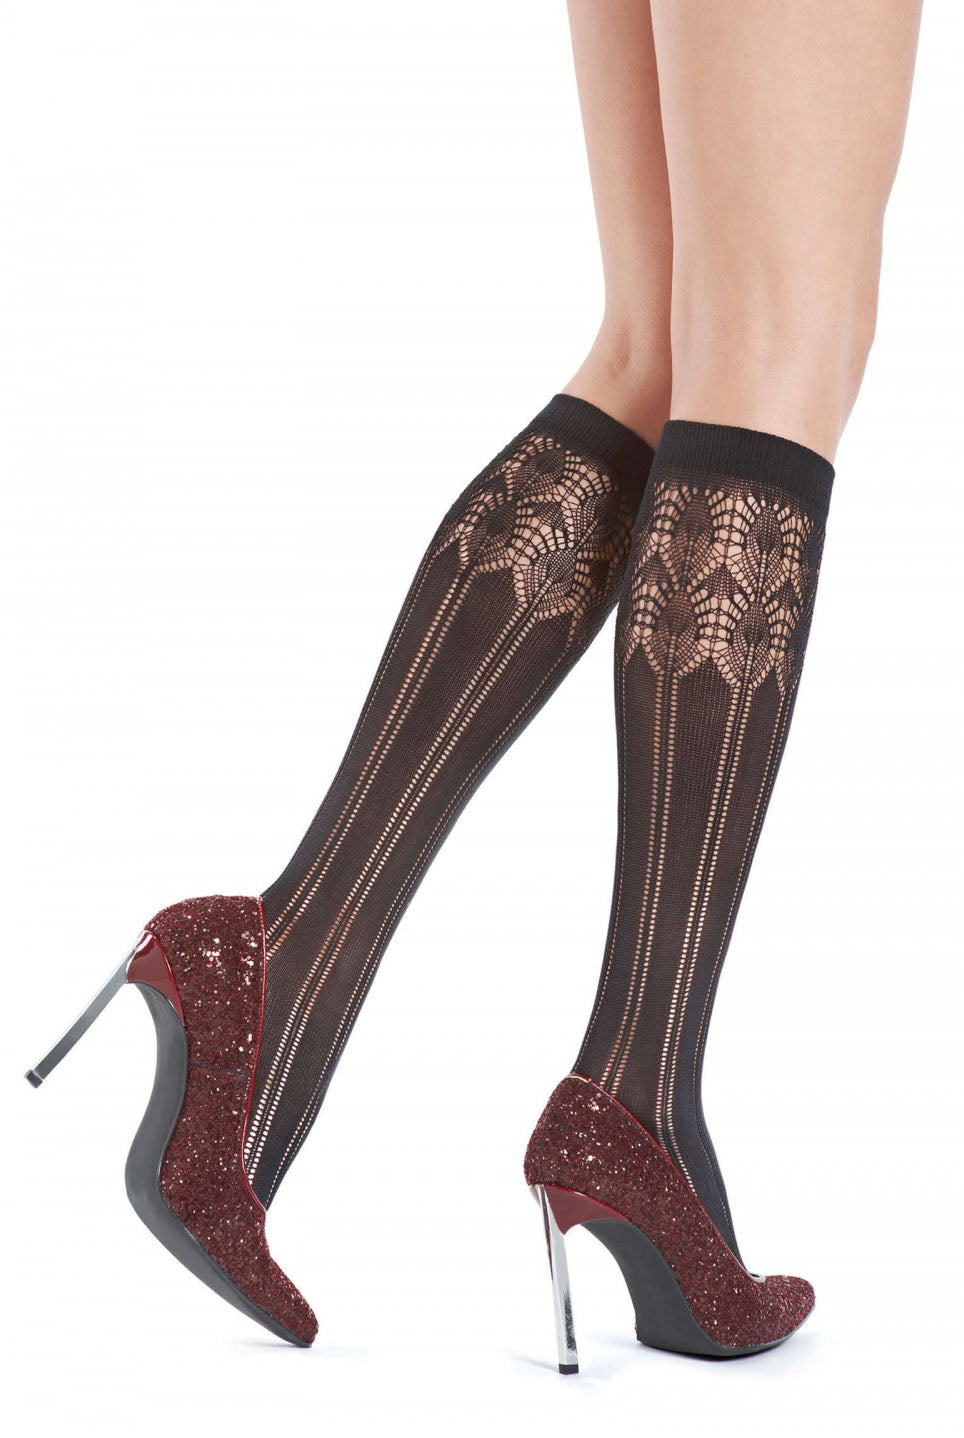 b34089c172c Close up of lady s lower legs wearing Oroblu brown melange Penny knee high  socks in burgundy